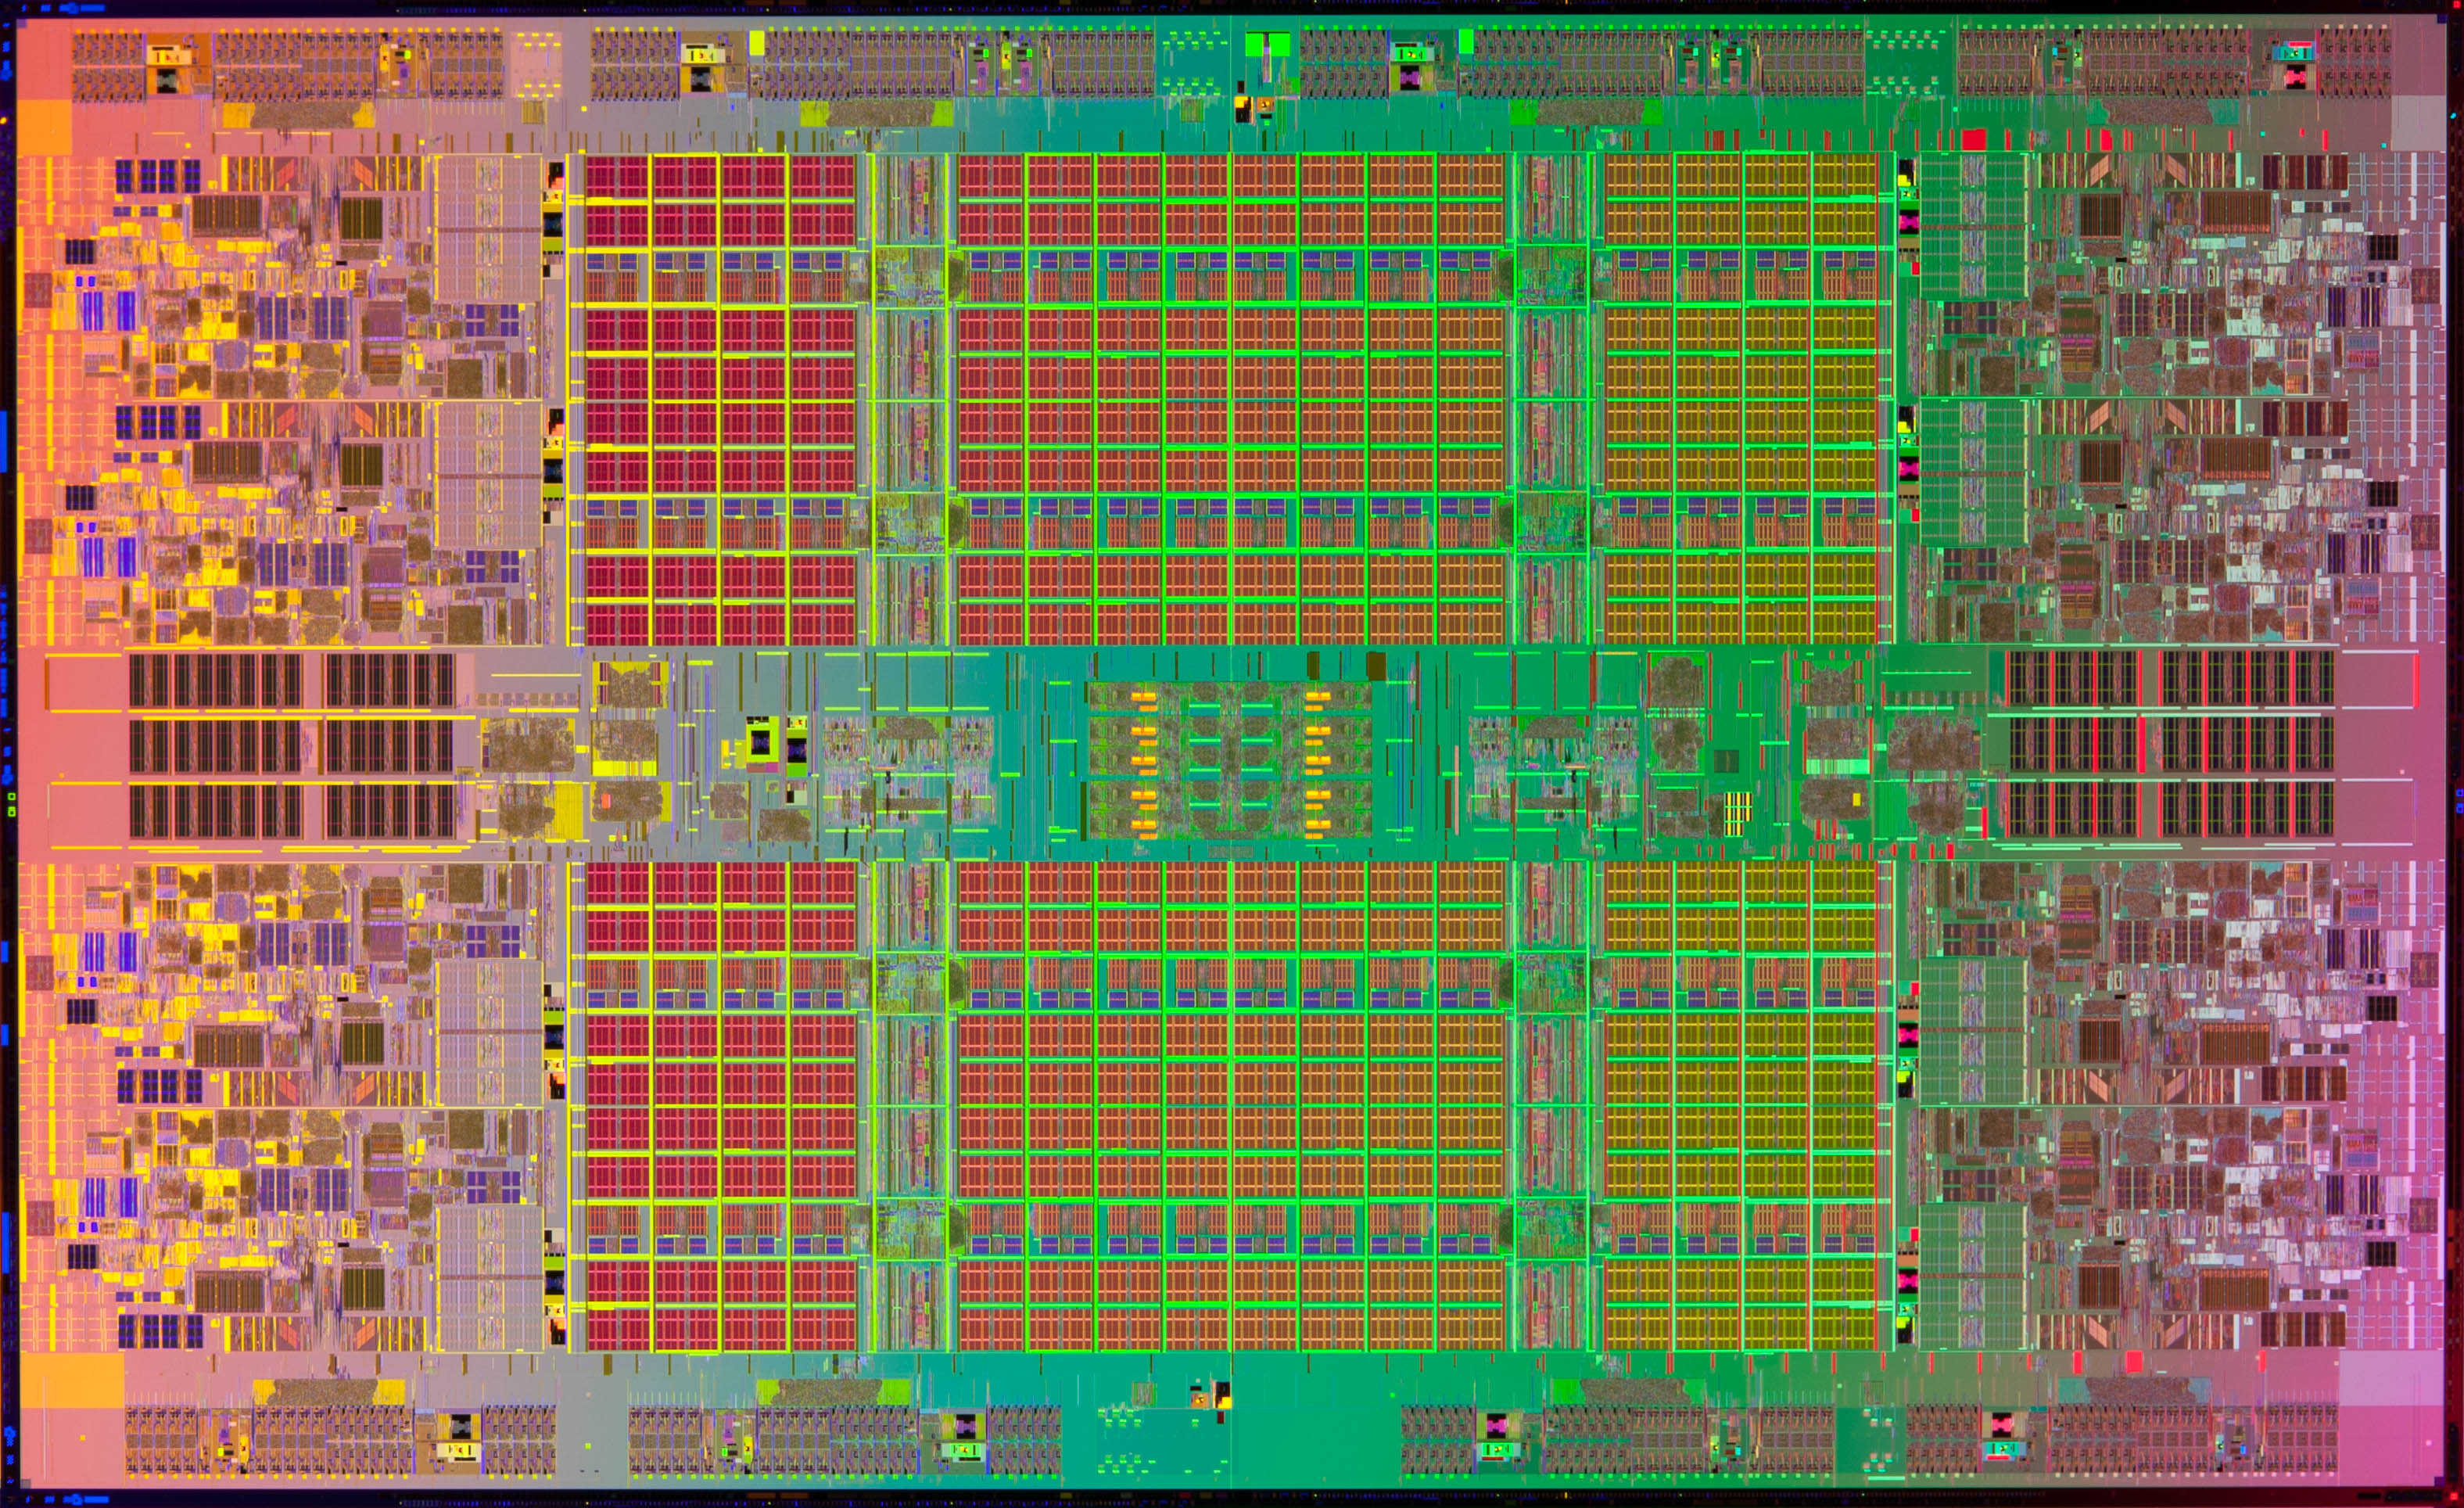 Intel-Itanium-Processor-9500_11.jpg